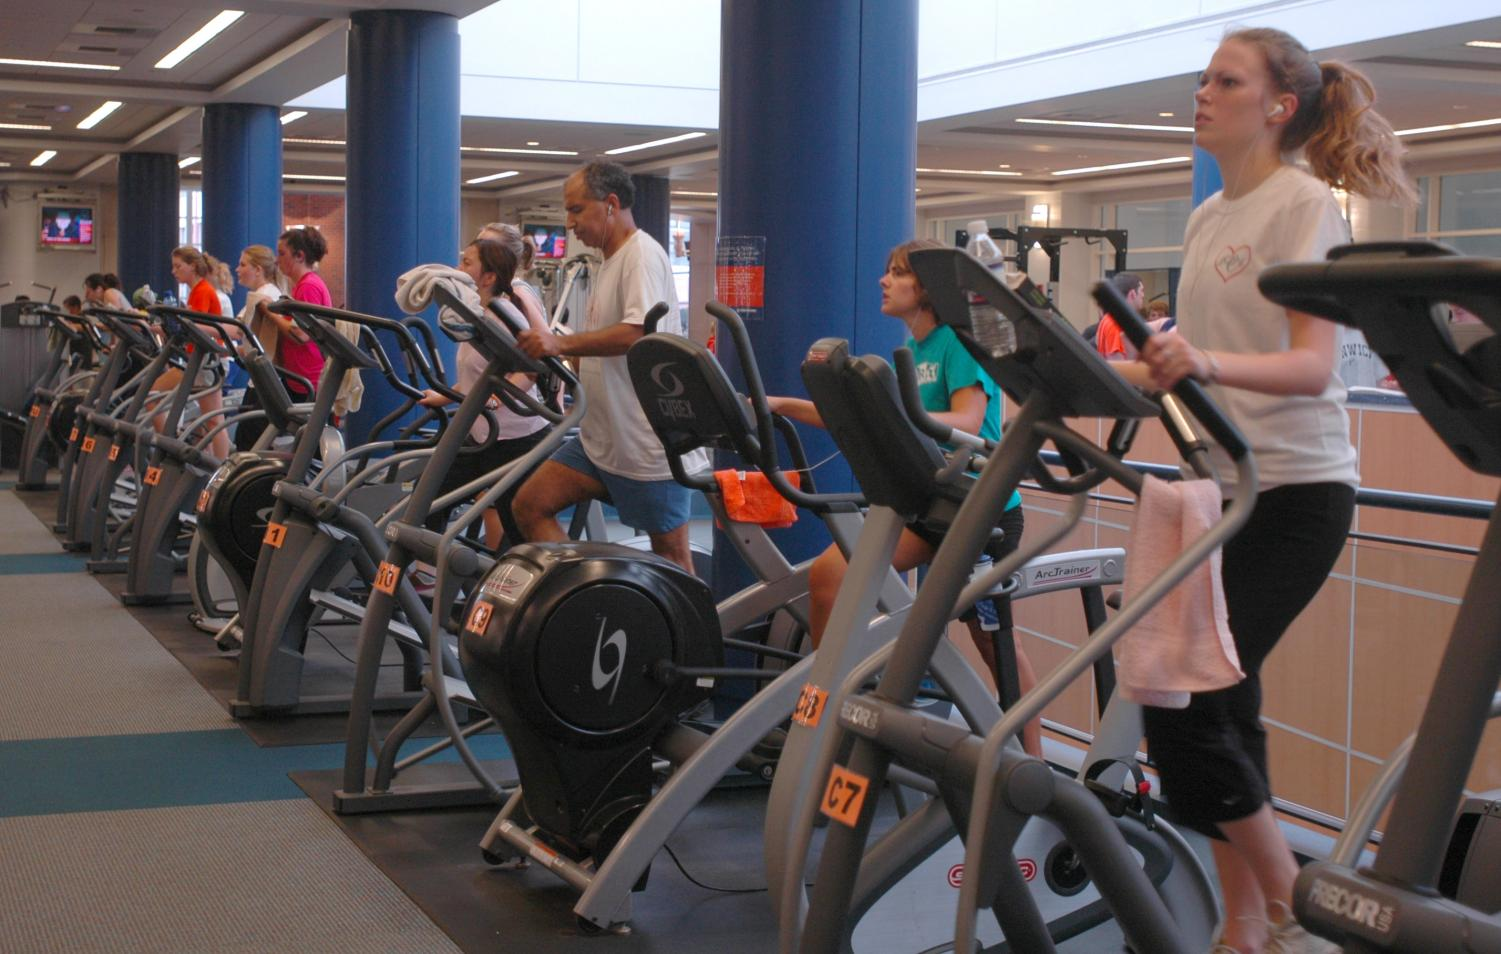 Students use the elliptical machines at CRCE. CRCE is just one of many workout options on campus.